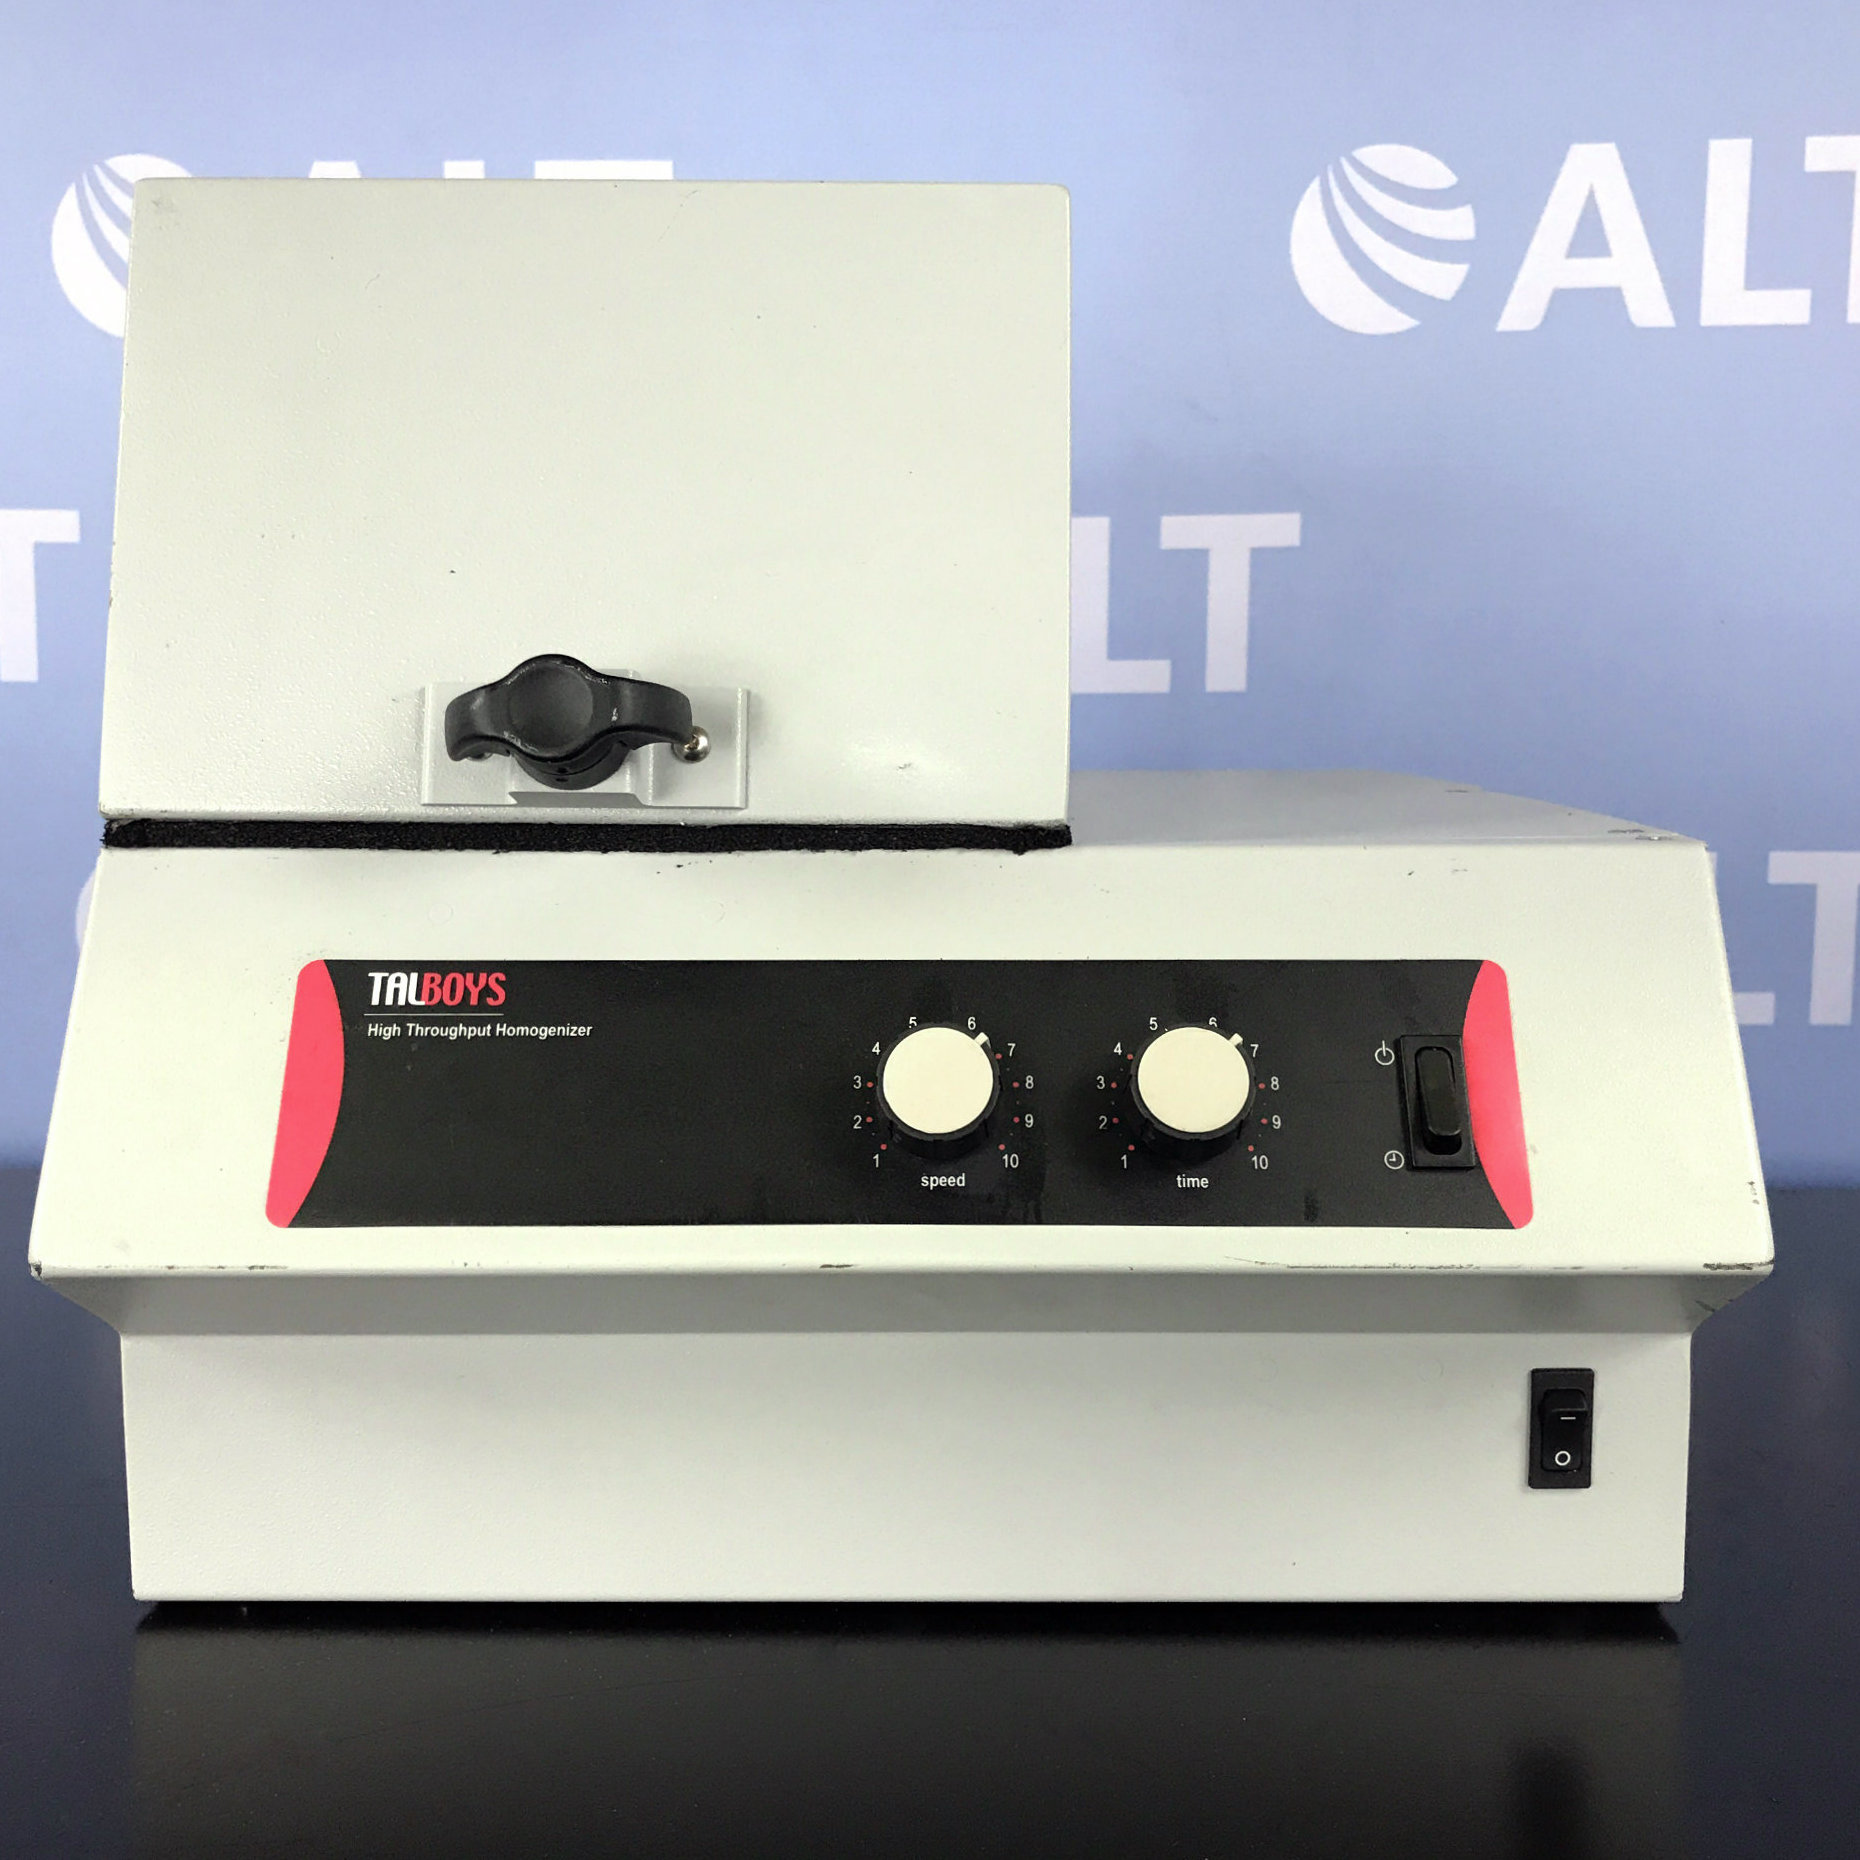 Talboys High Throughput Homogenizer Image